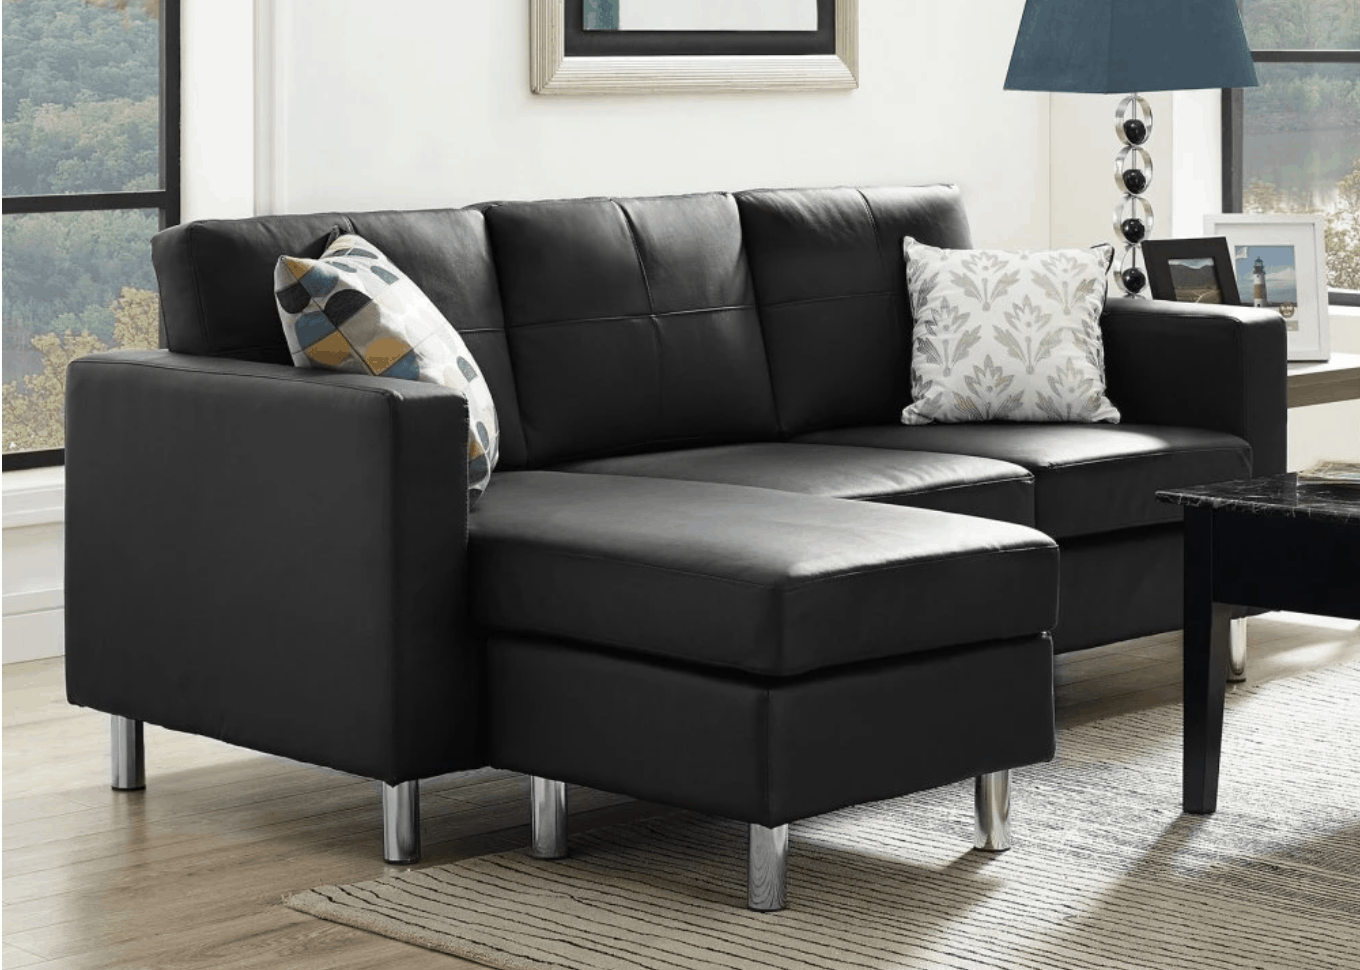 75 modern sectional sofas for small spaces 2018 rh homestratosphere com sectional sofas for small spaces with recliners armless sectional sofas small spaces